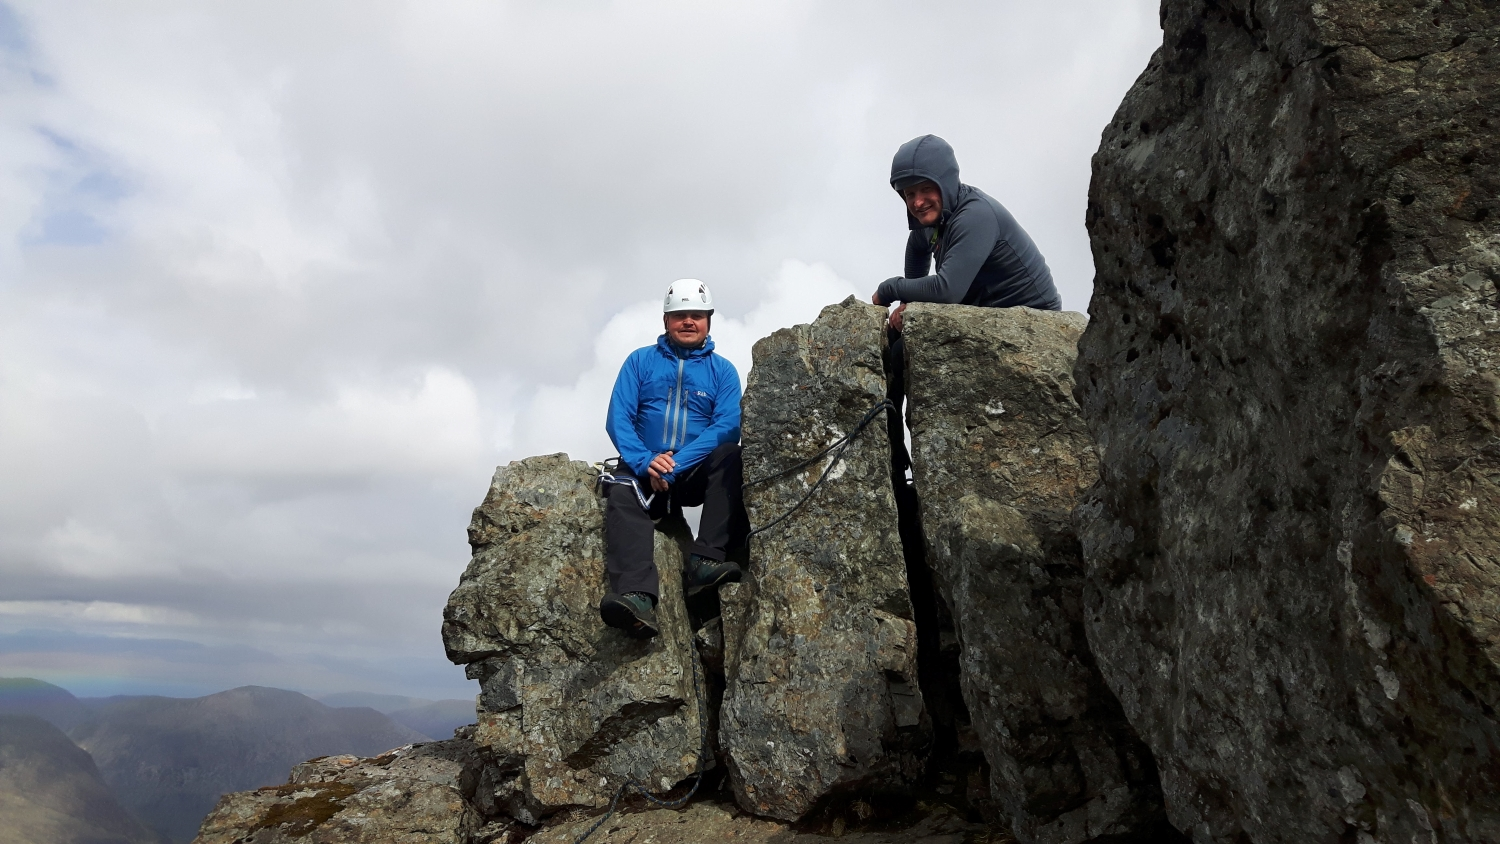 Joe and Paul on the top of the Inaccessible Pinnacle